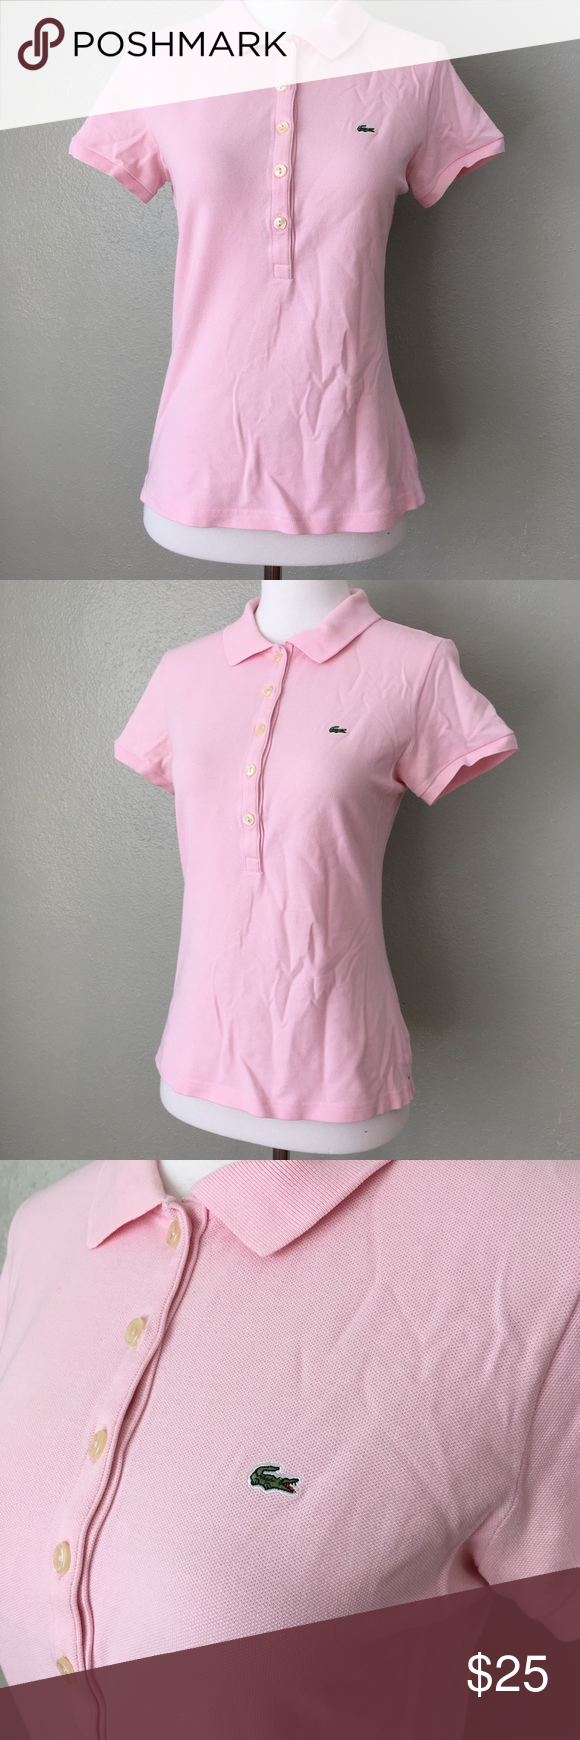 Lacoste light pink logo polo shirt lacoste polo shirts and polos lacoste light pink logo polo shirt sciox Images